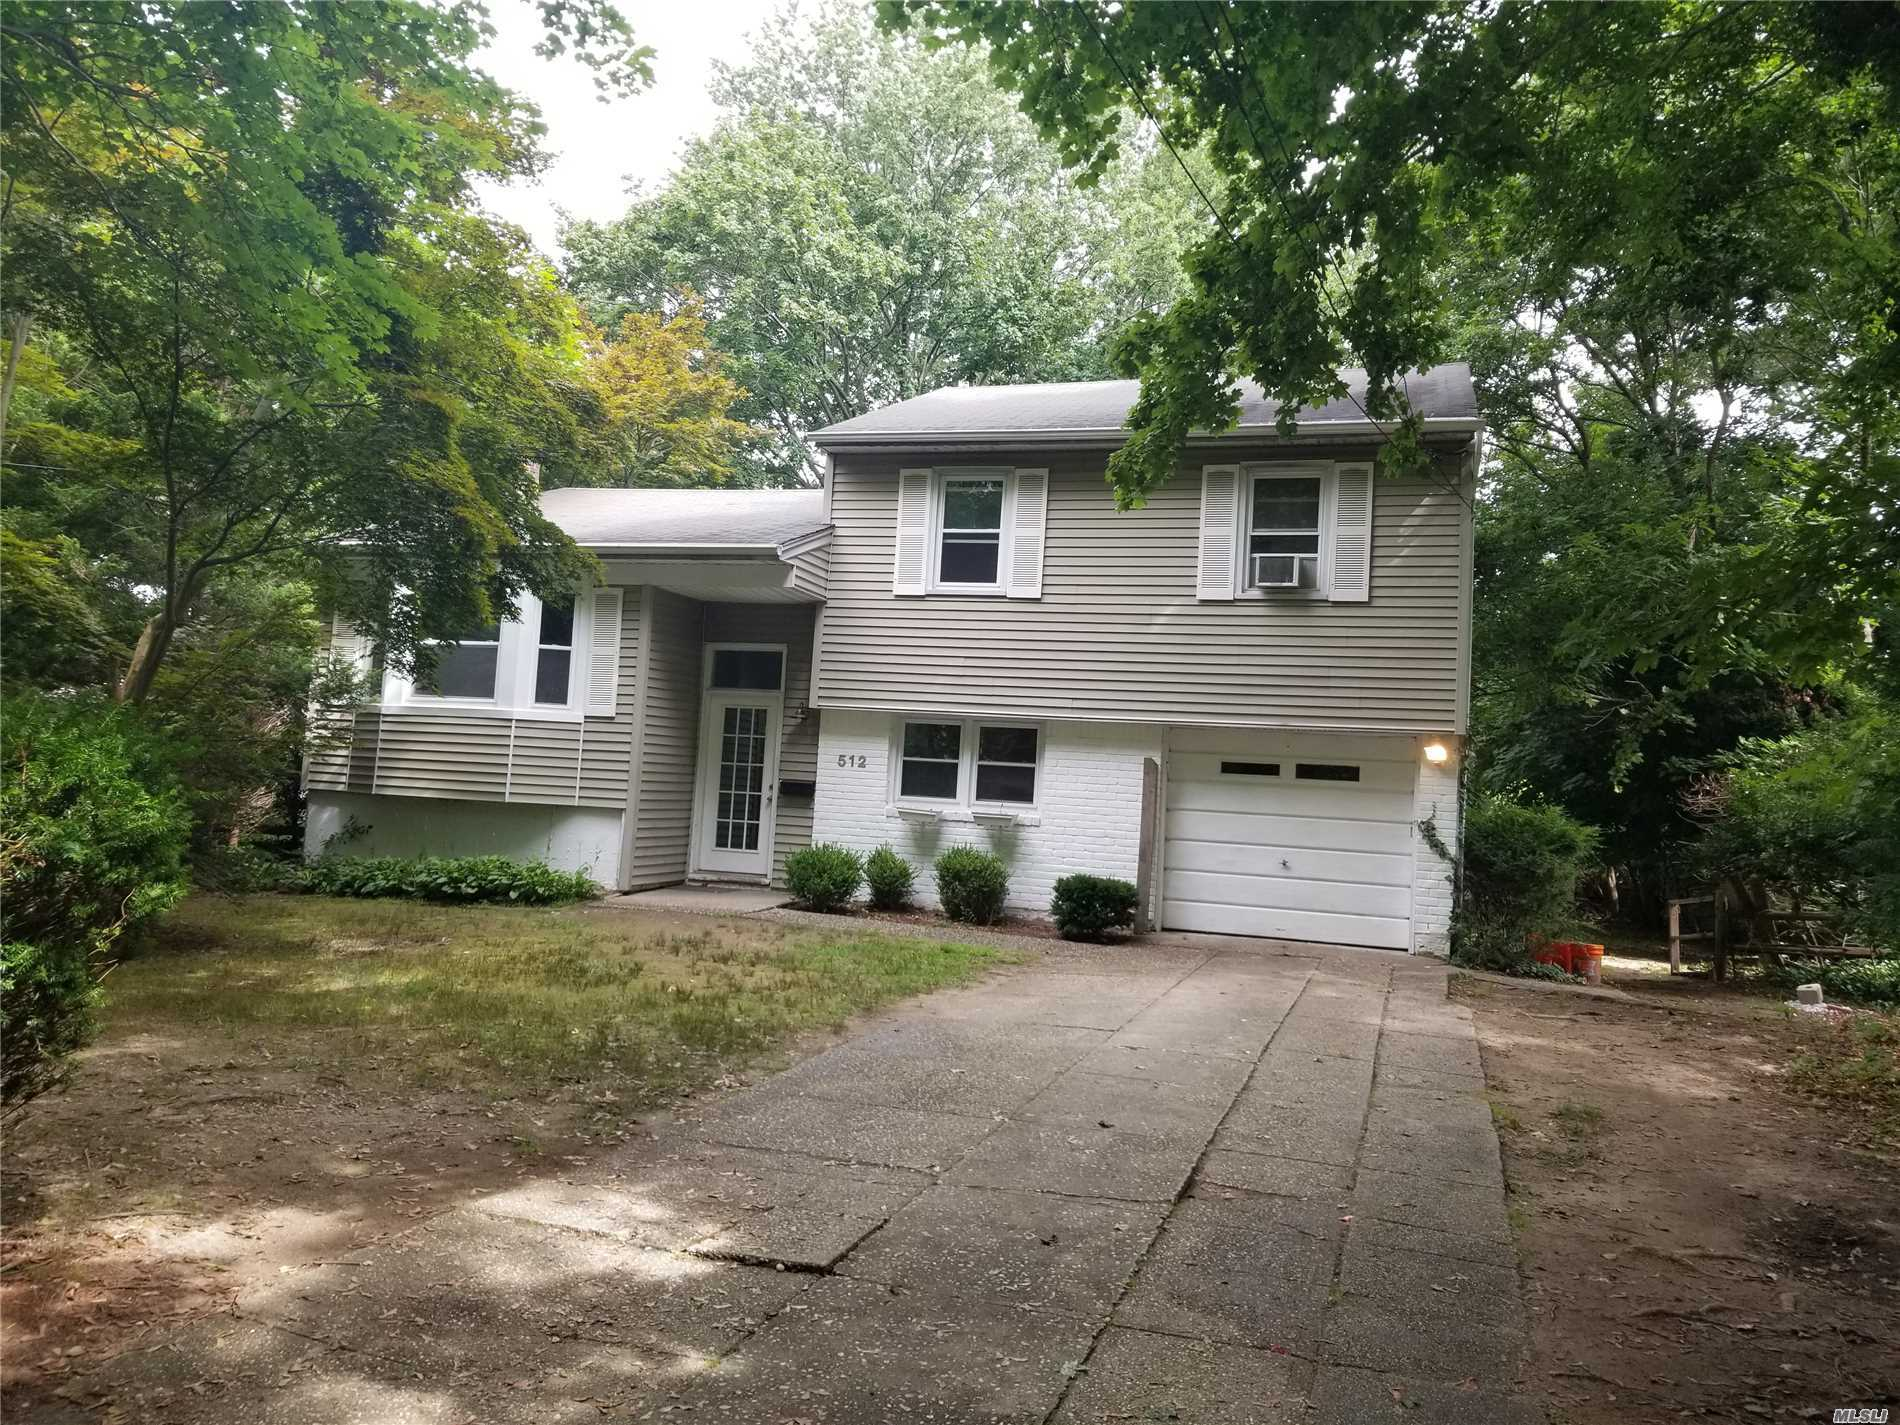 Freshly Painted, Updated Kitchen & Bath, New Washer & Dryer, Large Corner Property, Three Villiage Schools